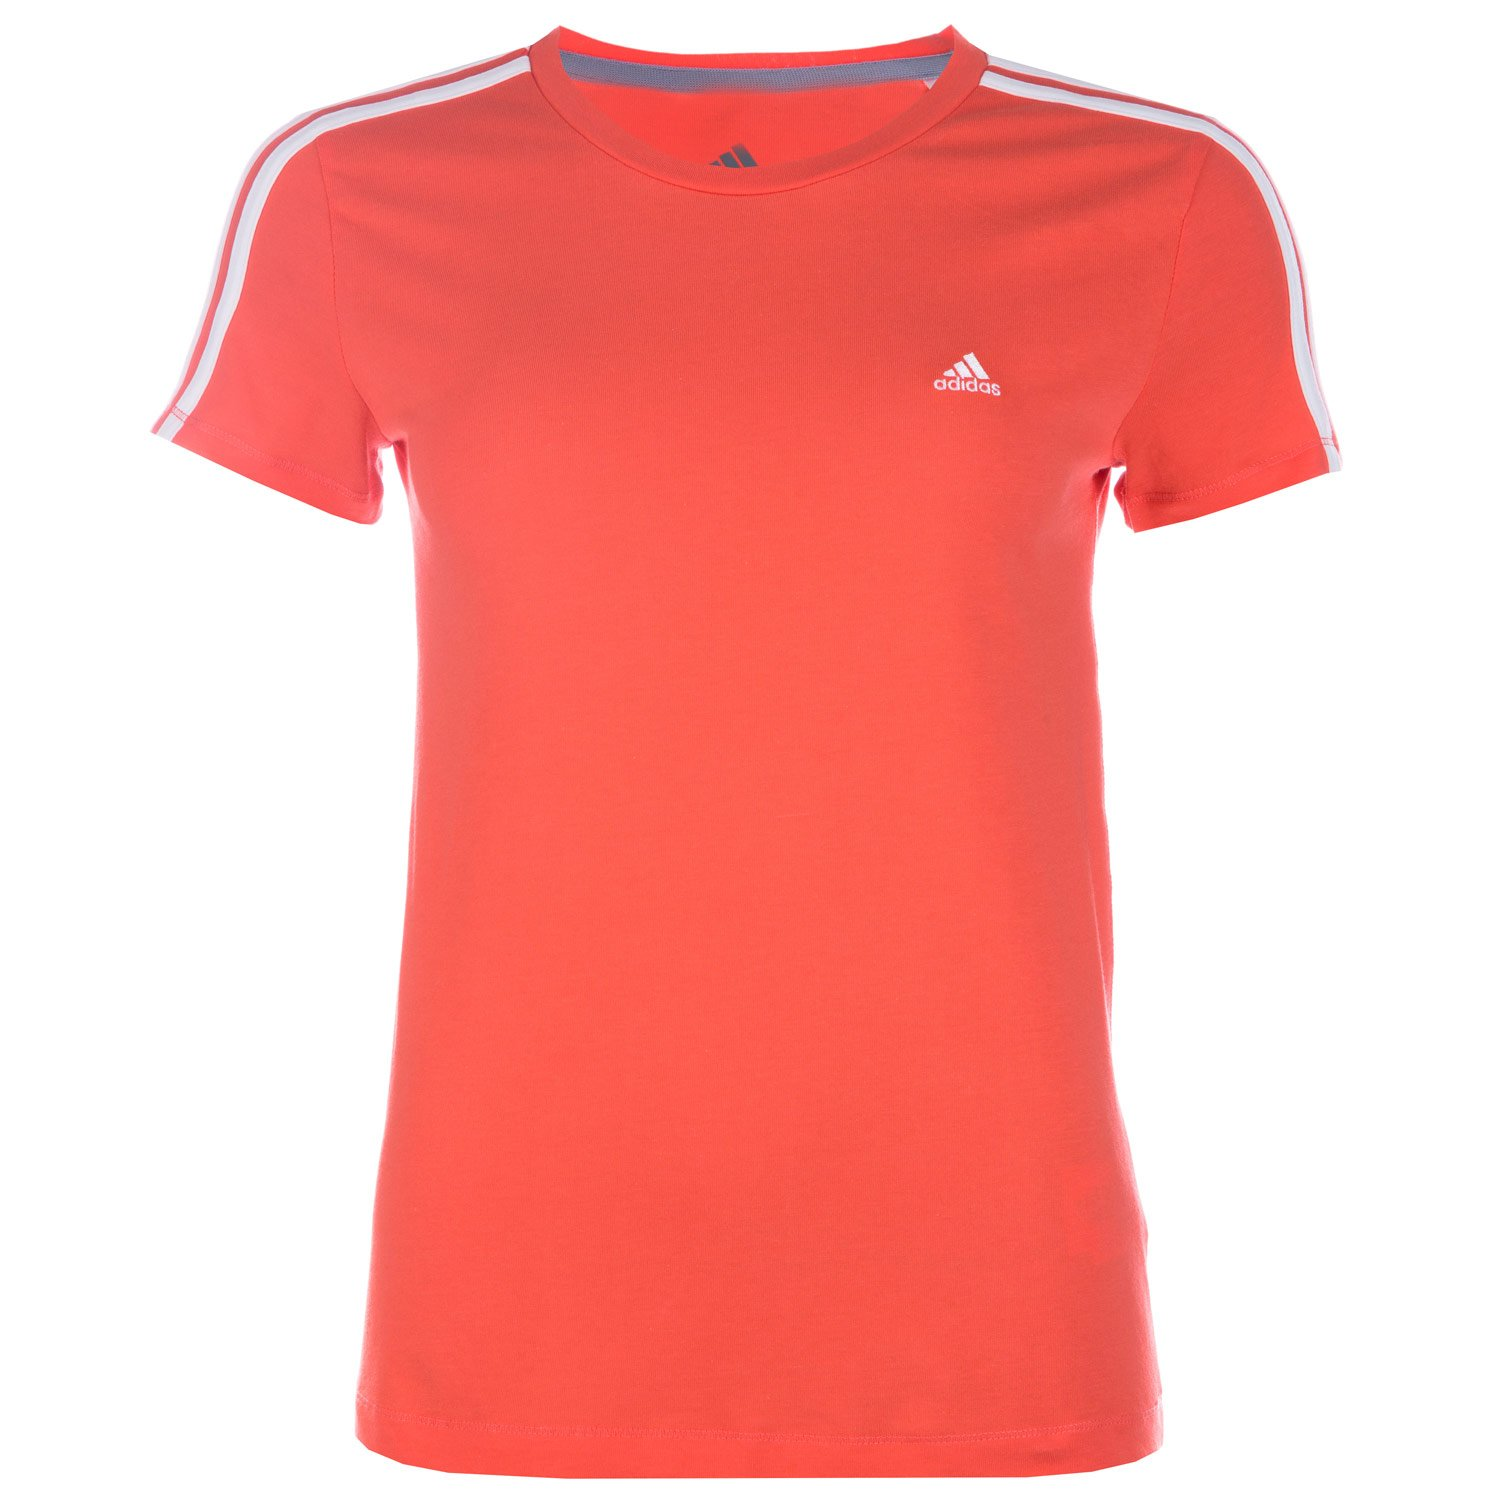 adidas Womens Essentials 3S T-Shirt in Coral- Built with Climalite Fabric That W